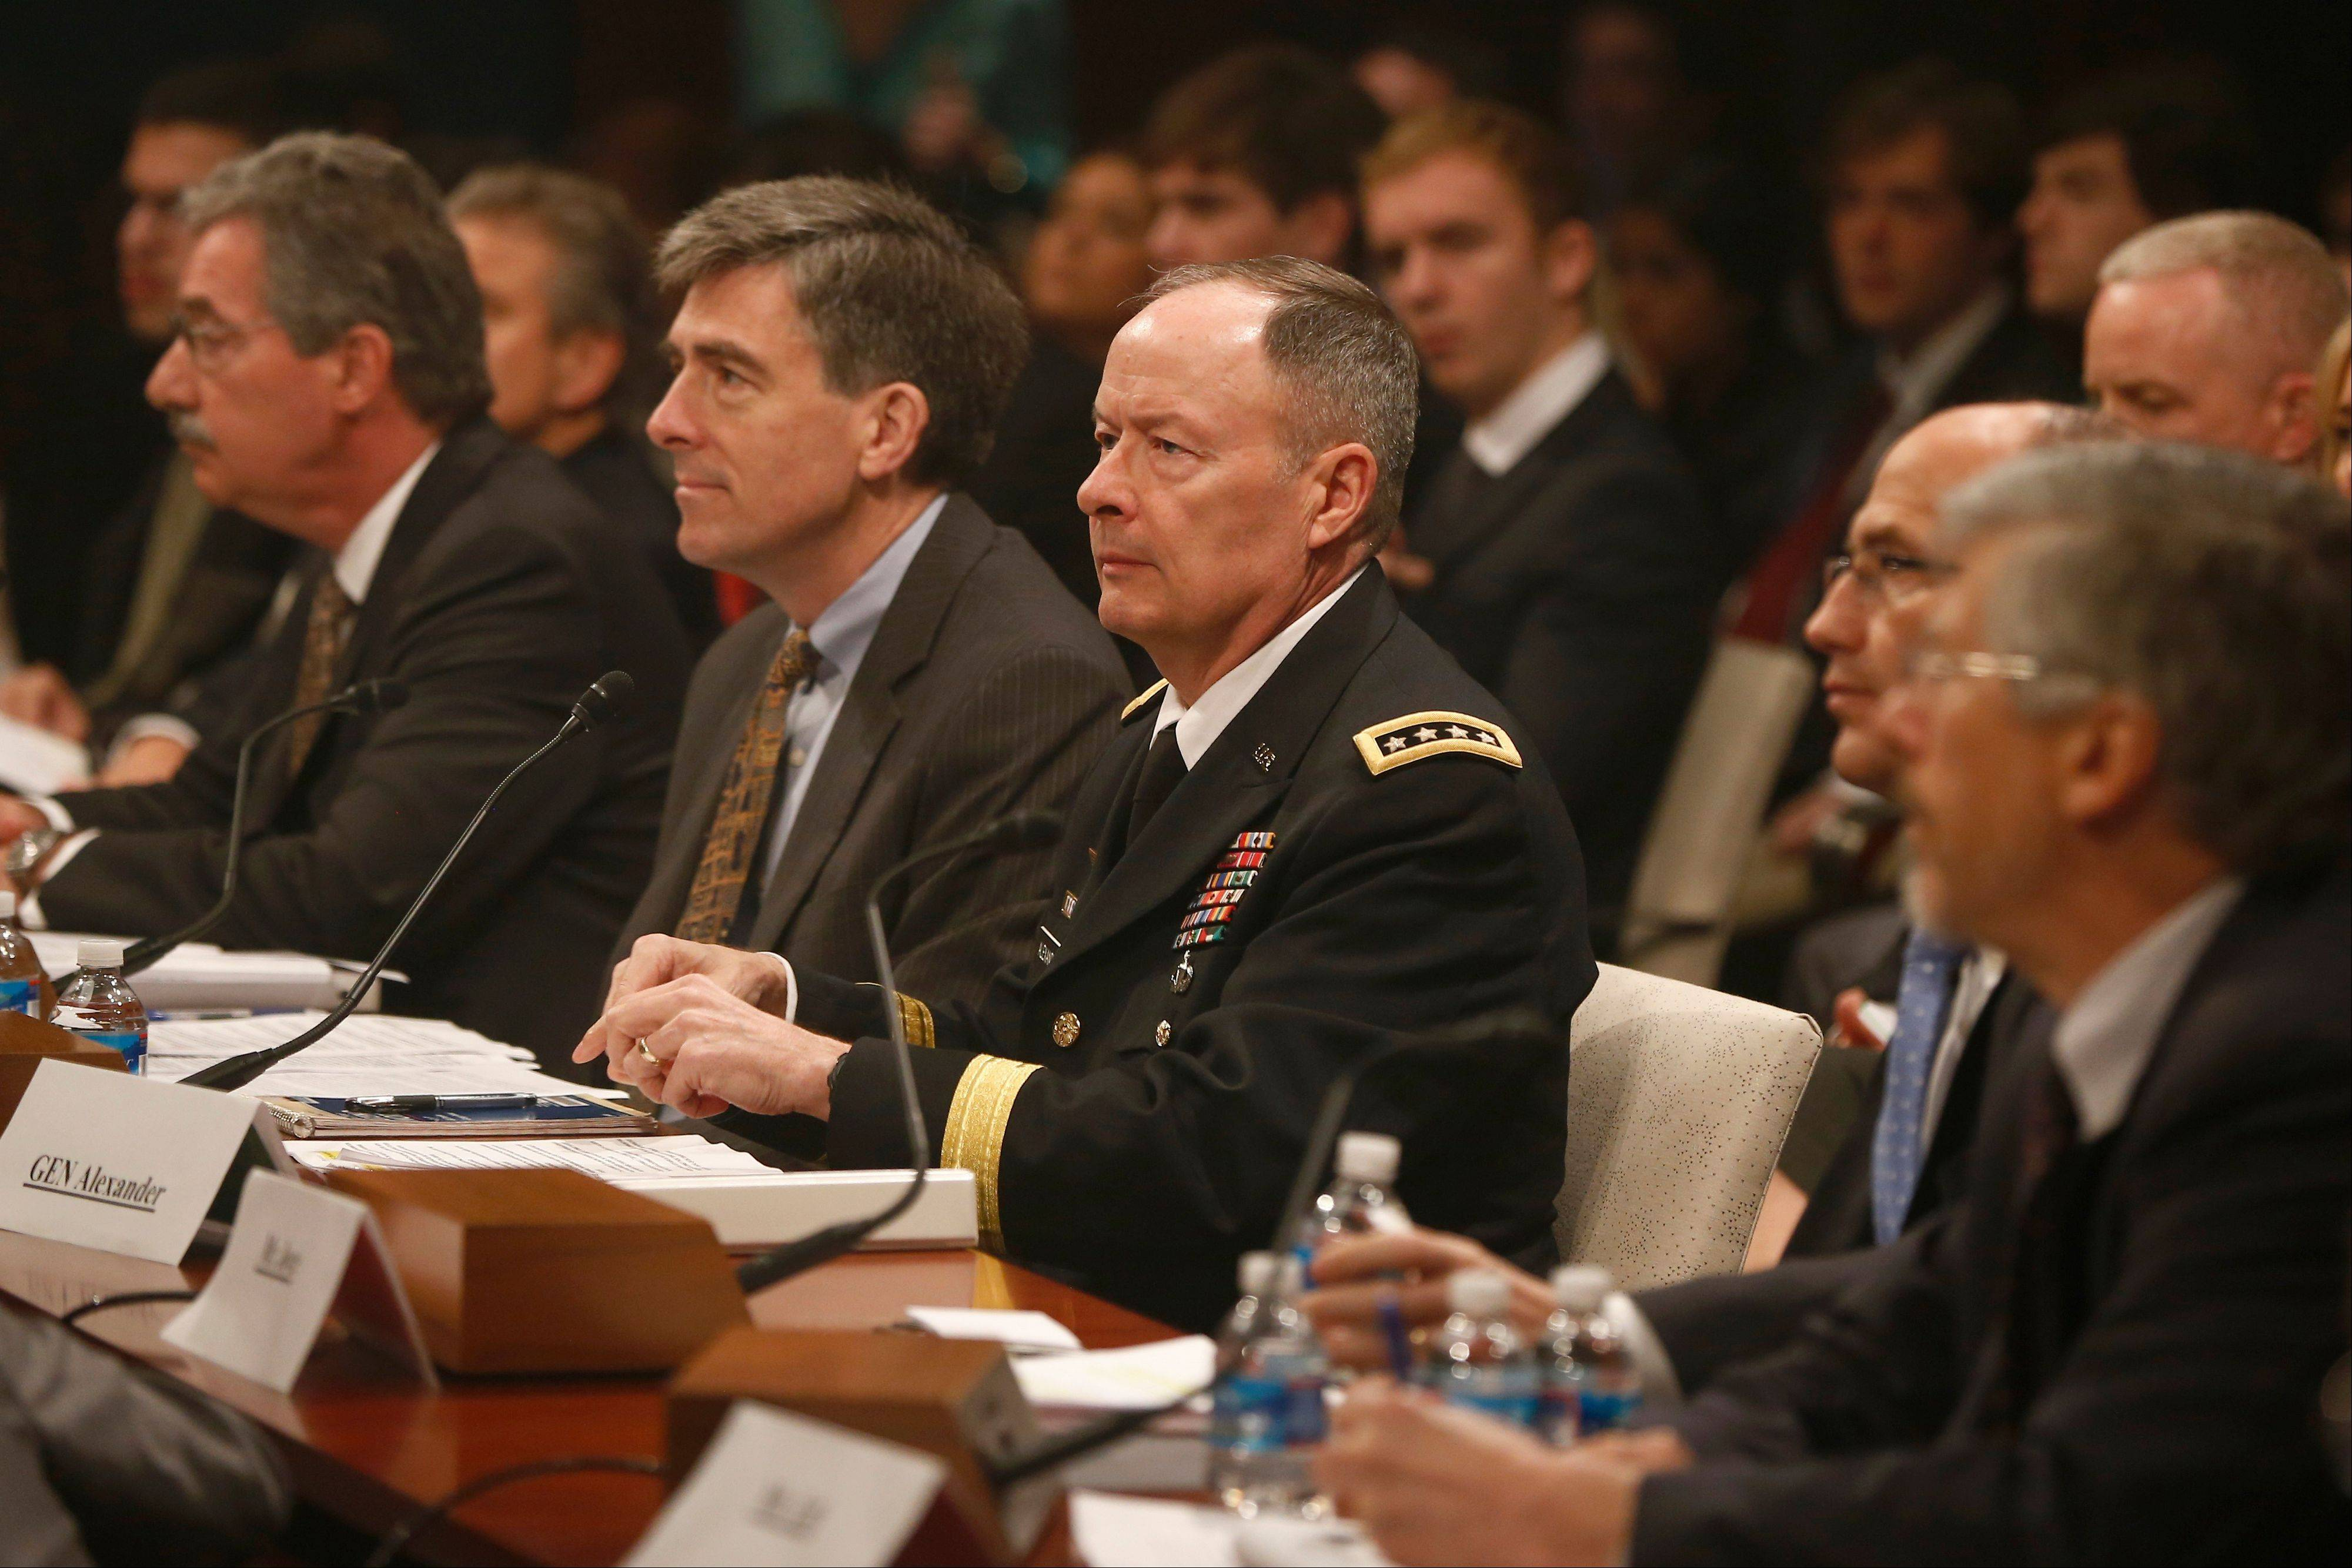 From left, Deputy Attorney General James Cole; National Security Agency (NSA) Deputy Director Chris Inglis; NSA Director Gen. Keith B. Alexander; Deputy FBI Director Sean Joyce; and Robert Litt, general counsel to the Office of the Director of National Intelligence; prepare to testify on Capitol Hill Tuesday before the House Intelligence Committee hearing regarding NSA surveillance.